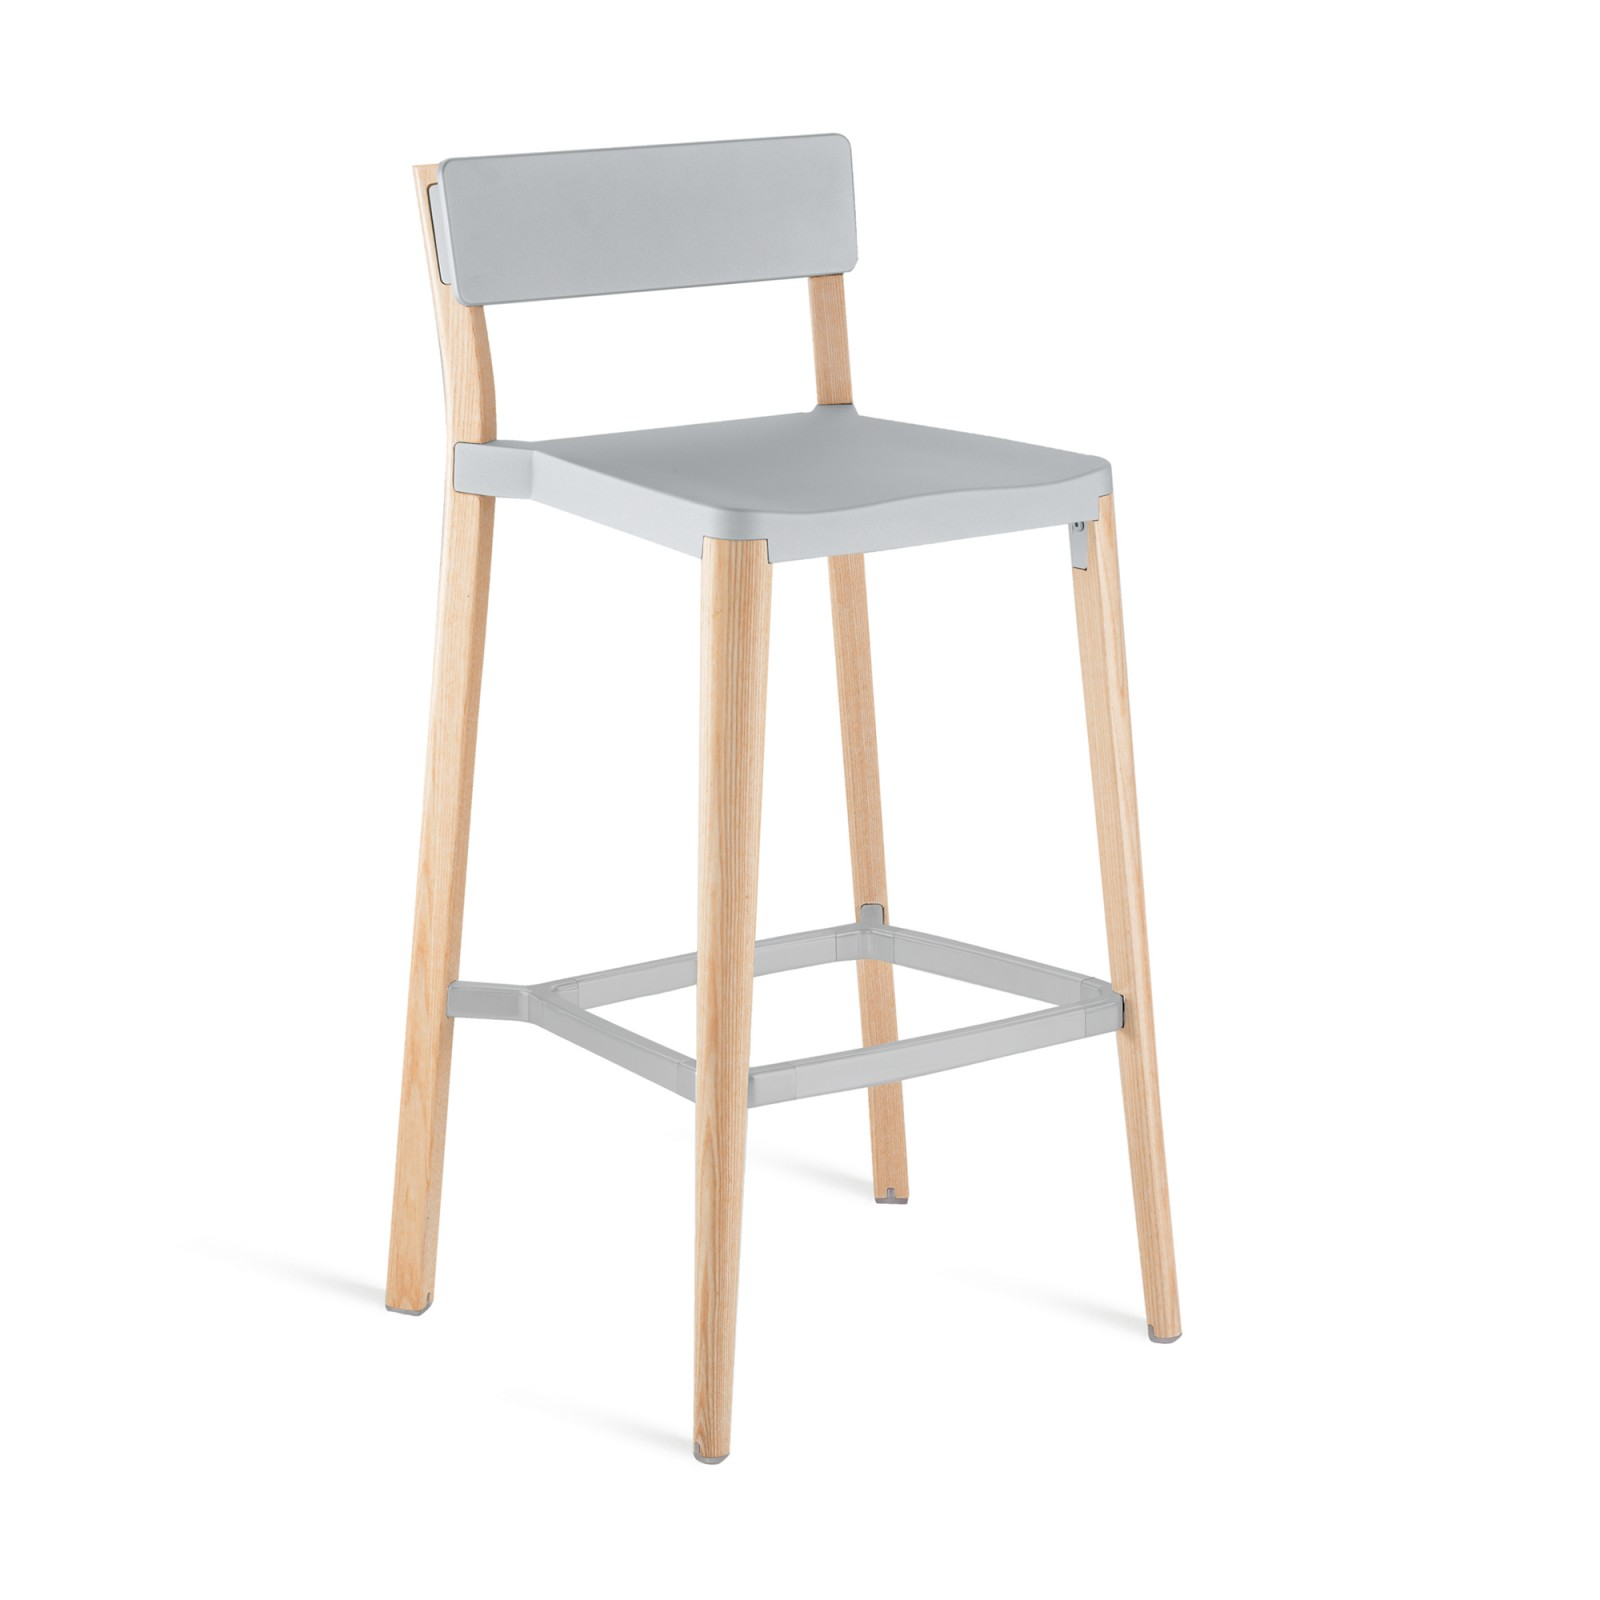 Lancaster Barstool Light Grey, Light Wood Base, Without Seat Pad, Without Back Pad